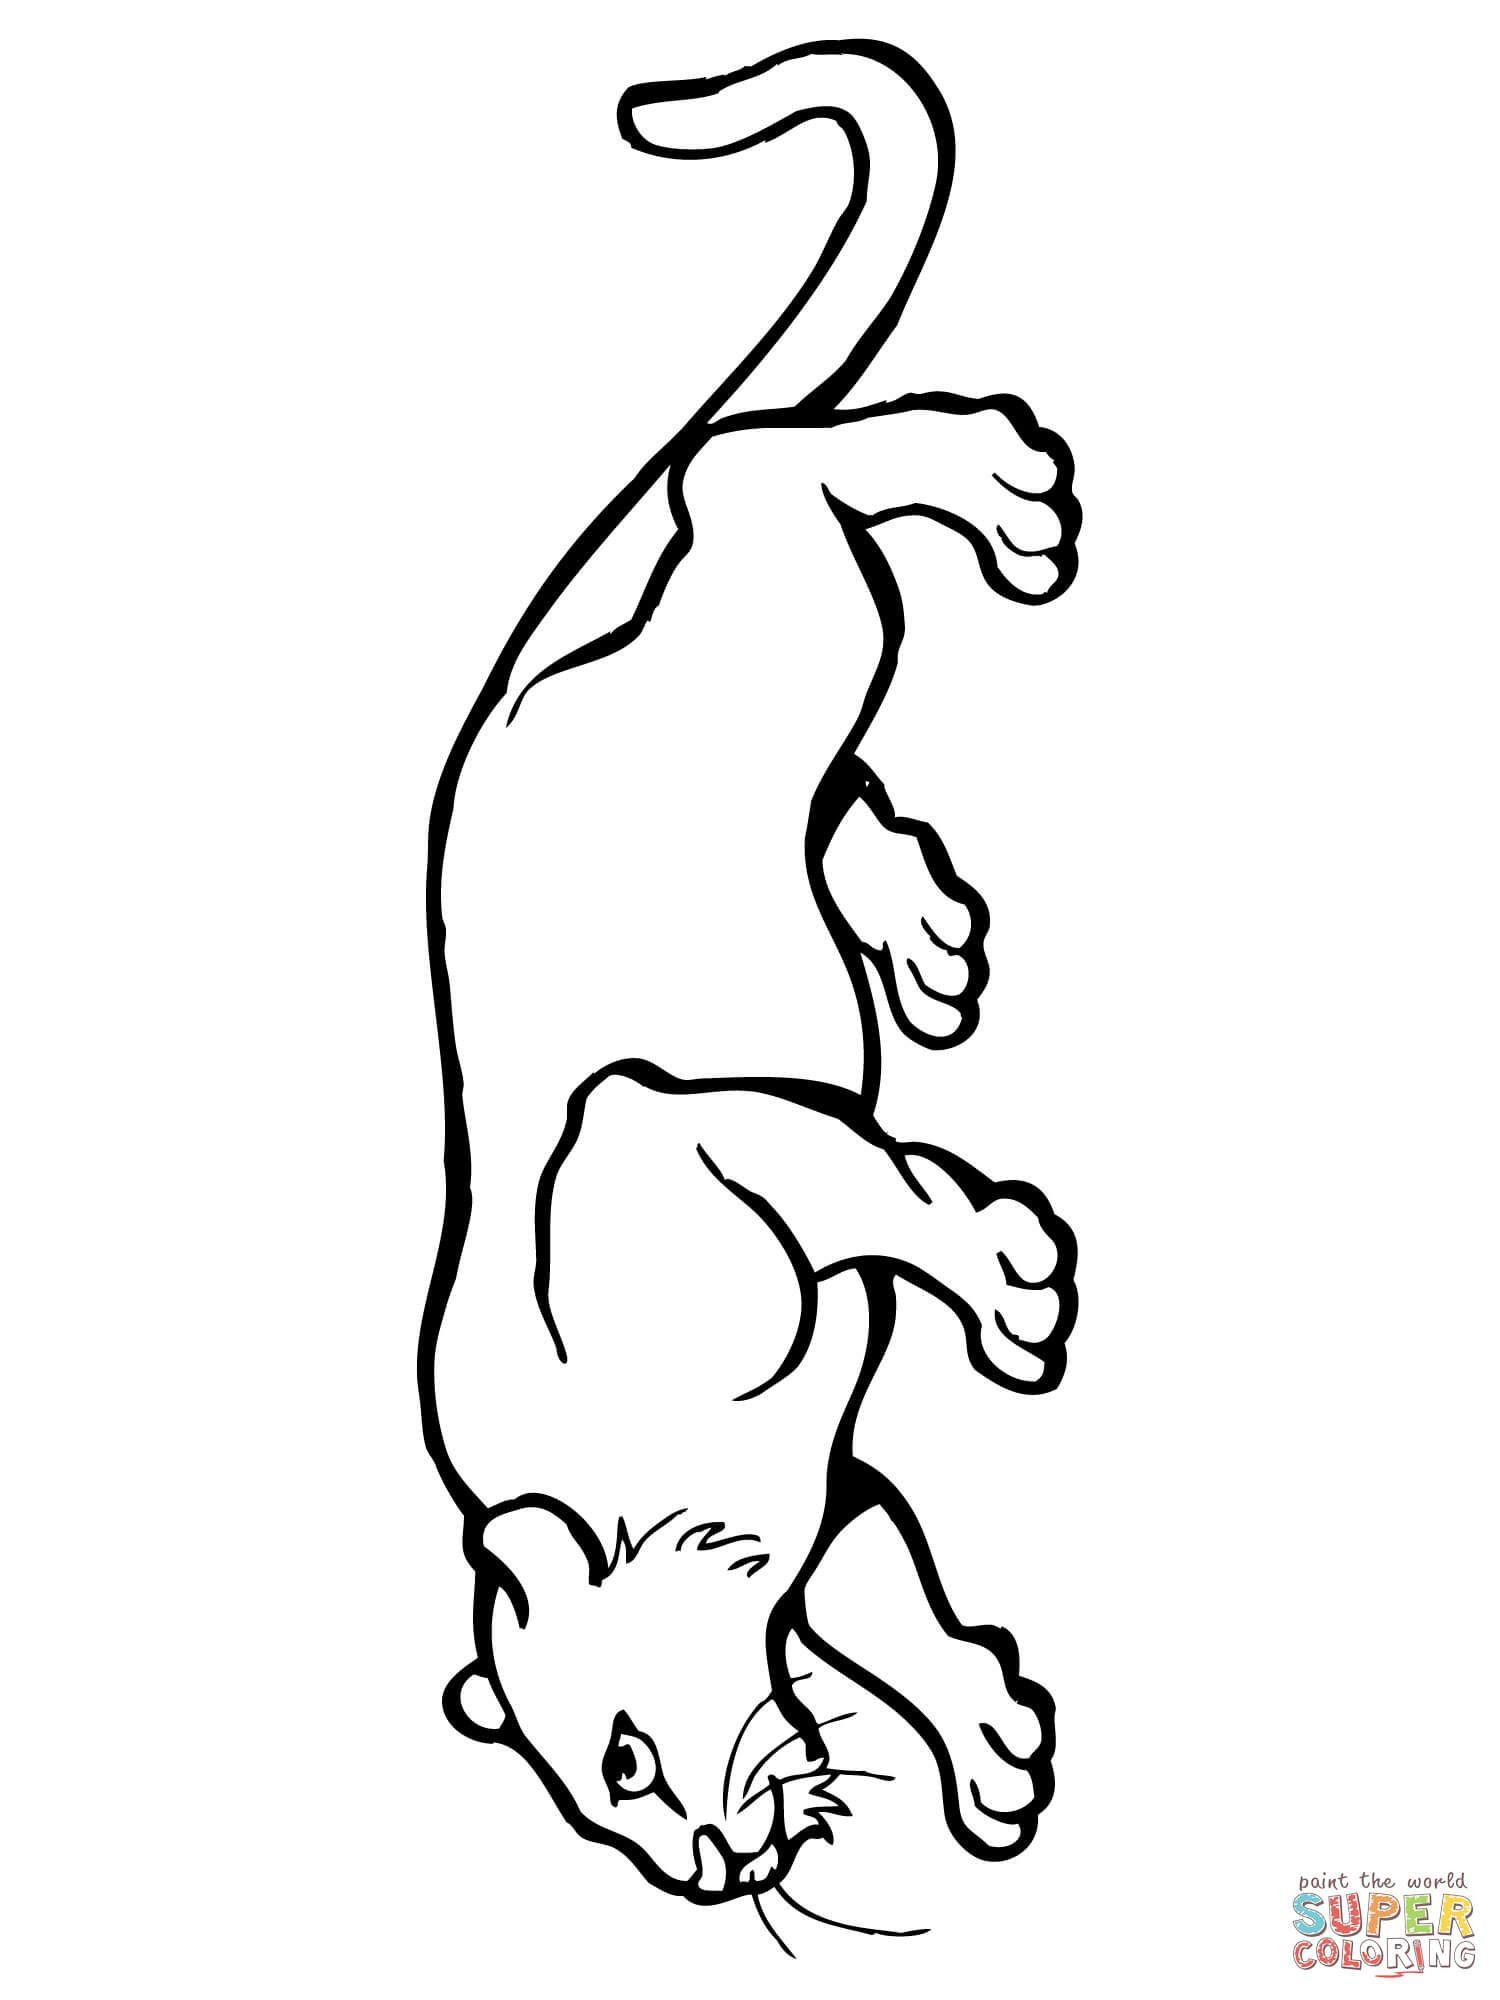 Mountain Lion Coloring Page Youngandtae Com In 2020 Lion Coloring Pages Coloring Pages Precious Moments Coloring Pages